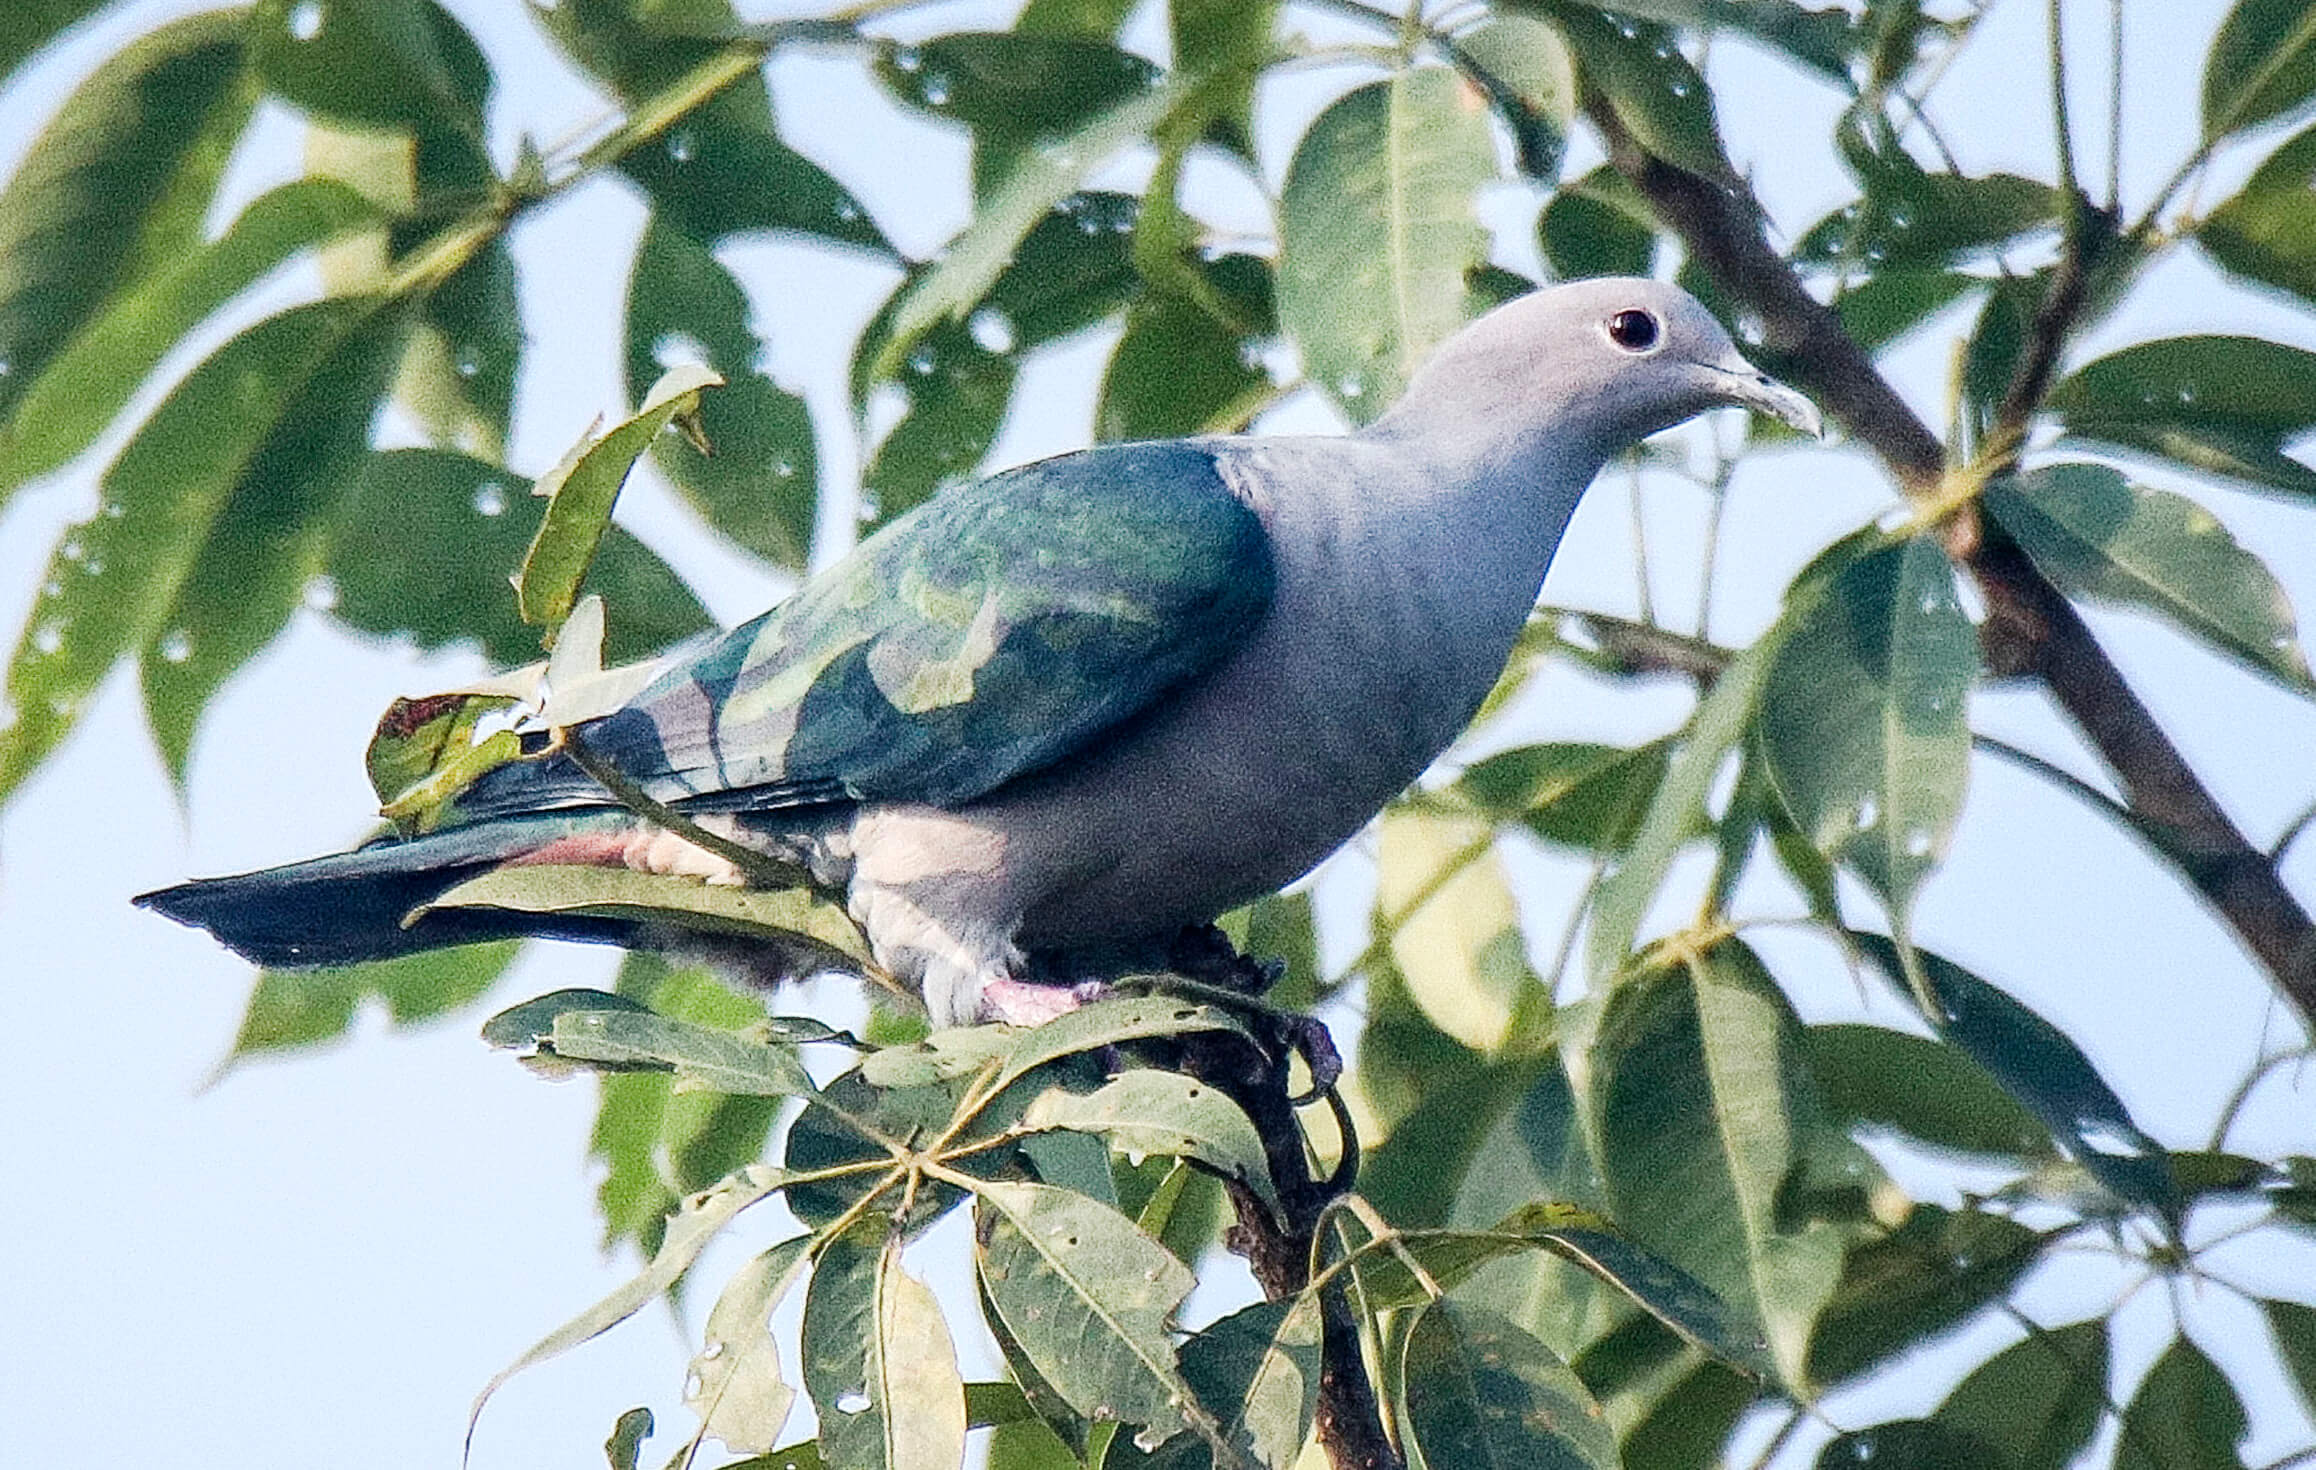 Rare wild pigeon sighted in Nepal